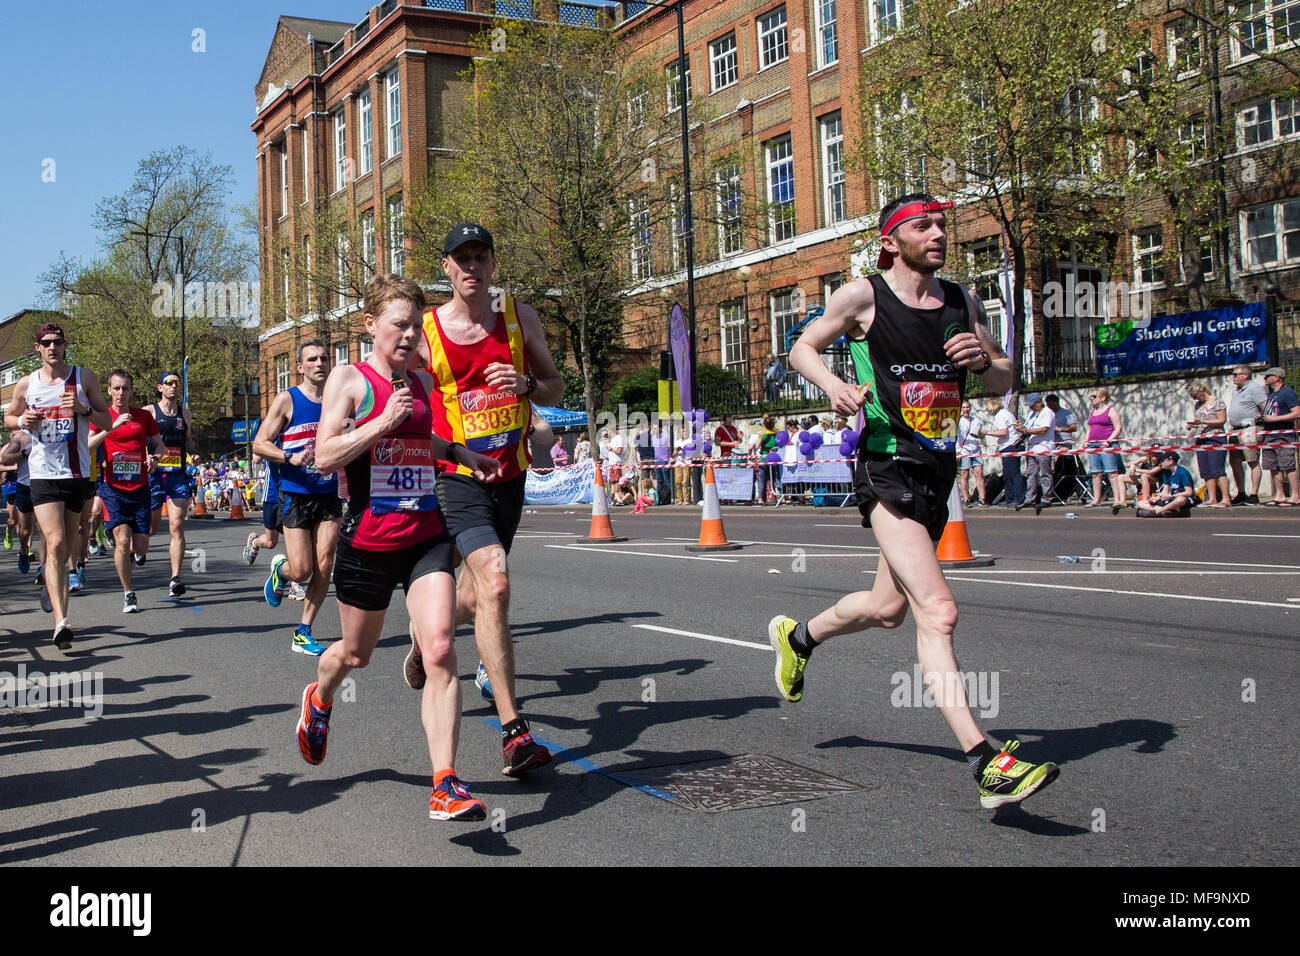 London, UK. 22nd April, 2018. Andrea Banks (l, Jersey Spartan AC), Edward Revell (c, Spenborough) and Barry McCarroll (r, Slieve Gullion) compete in t - Stock Image